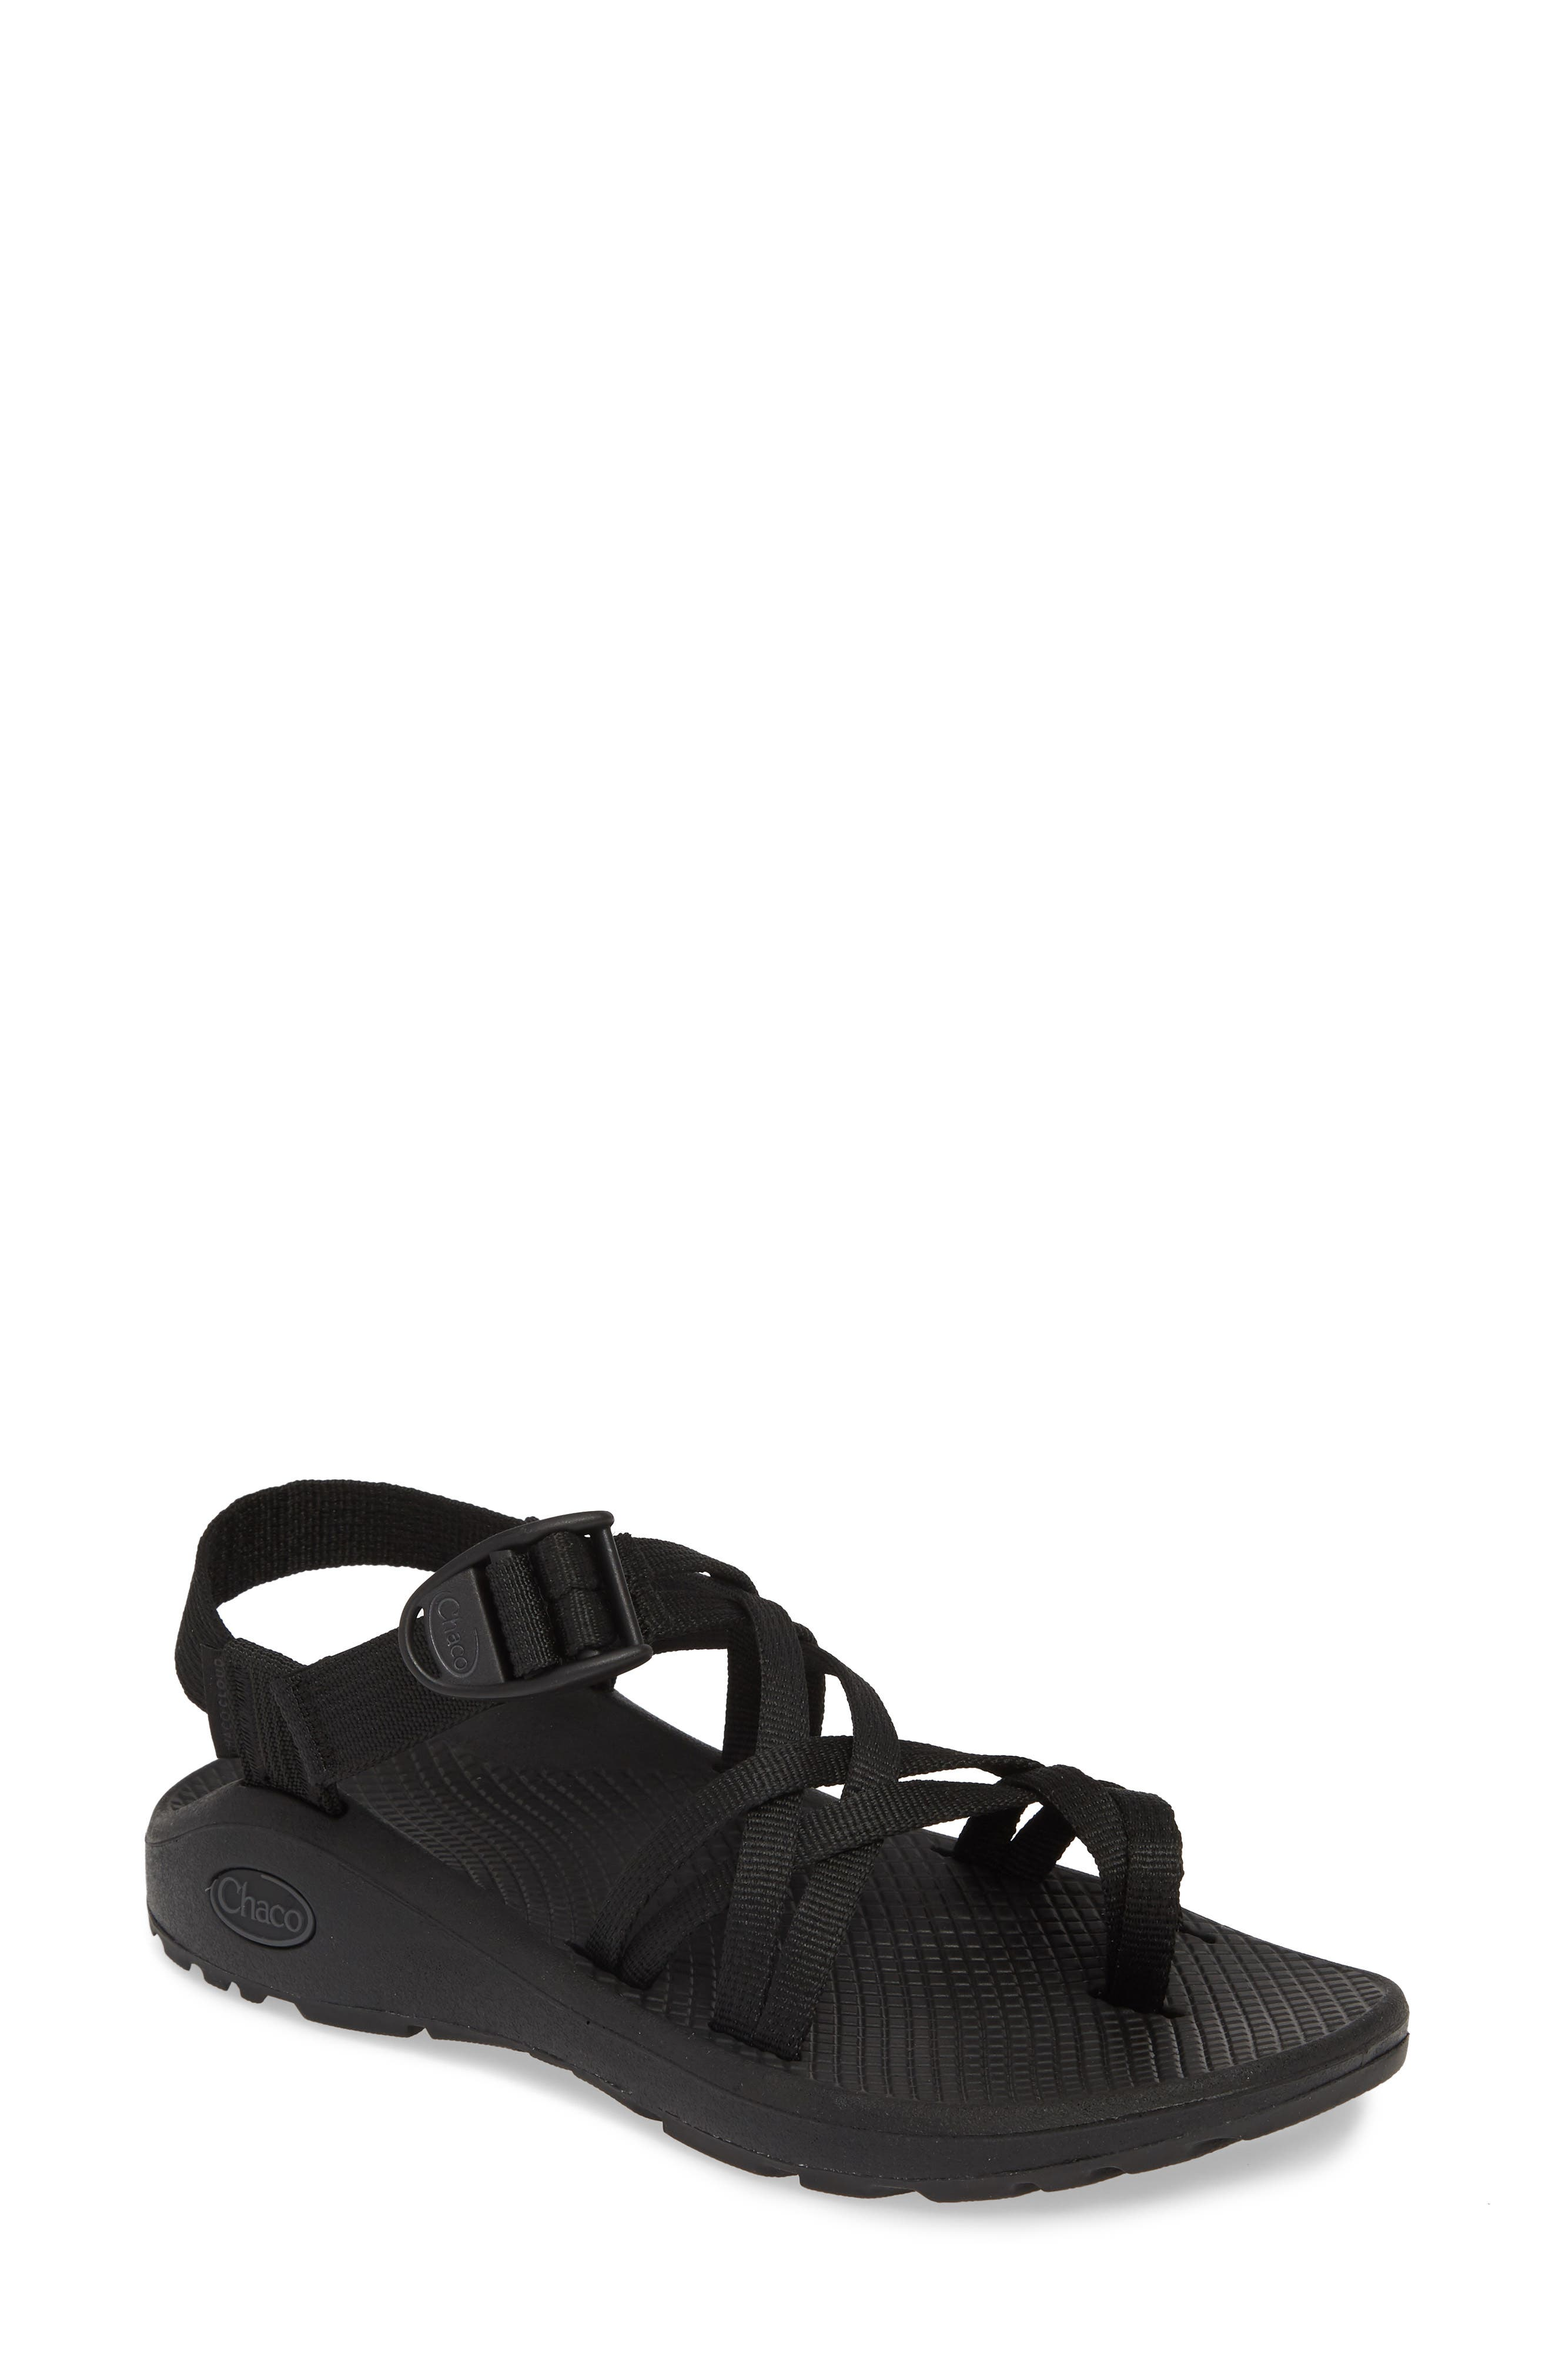 CHACO Z/Cloud X2 Sandal, Main, color, SOLID BLACK FABRIC